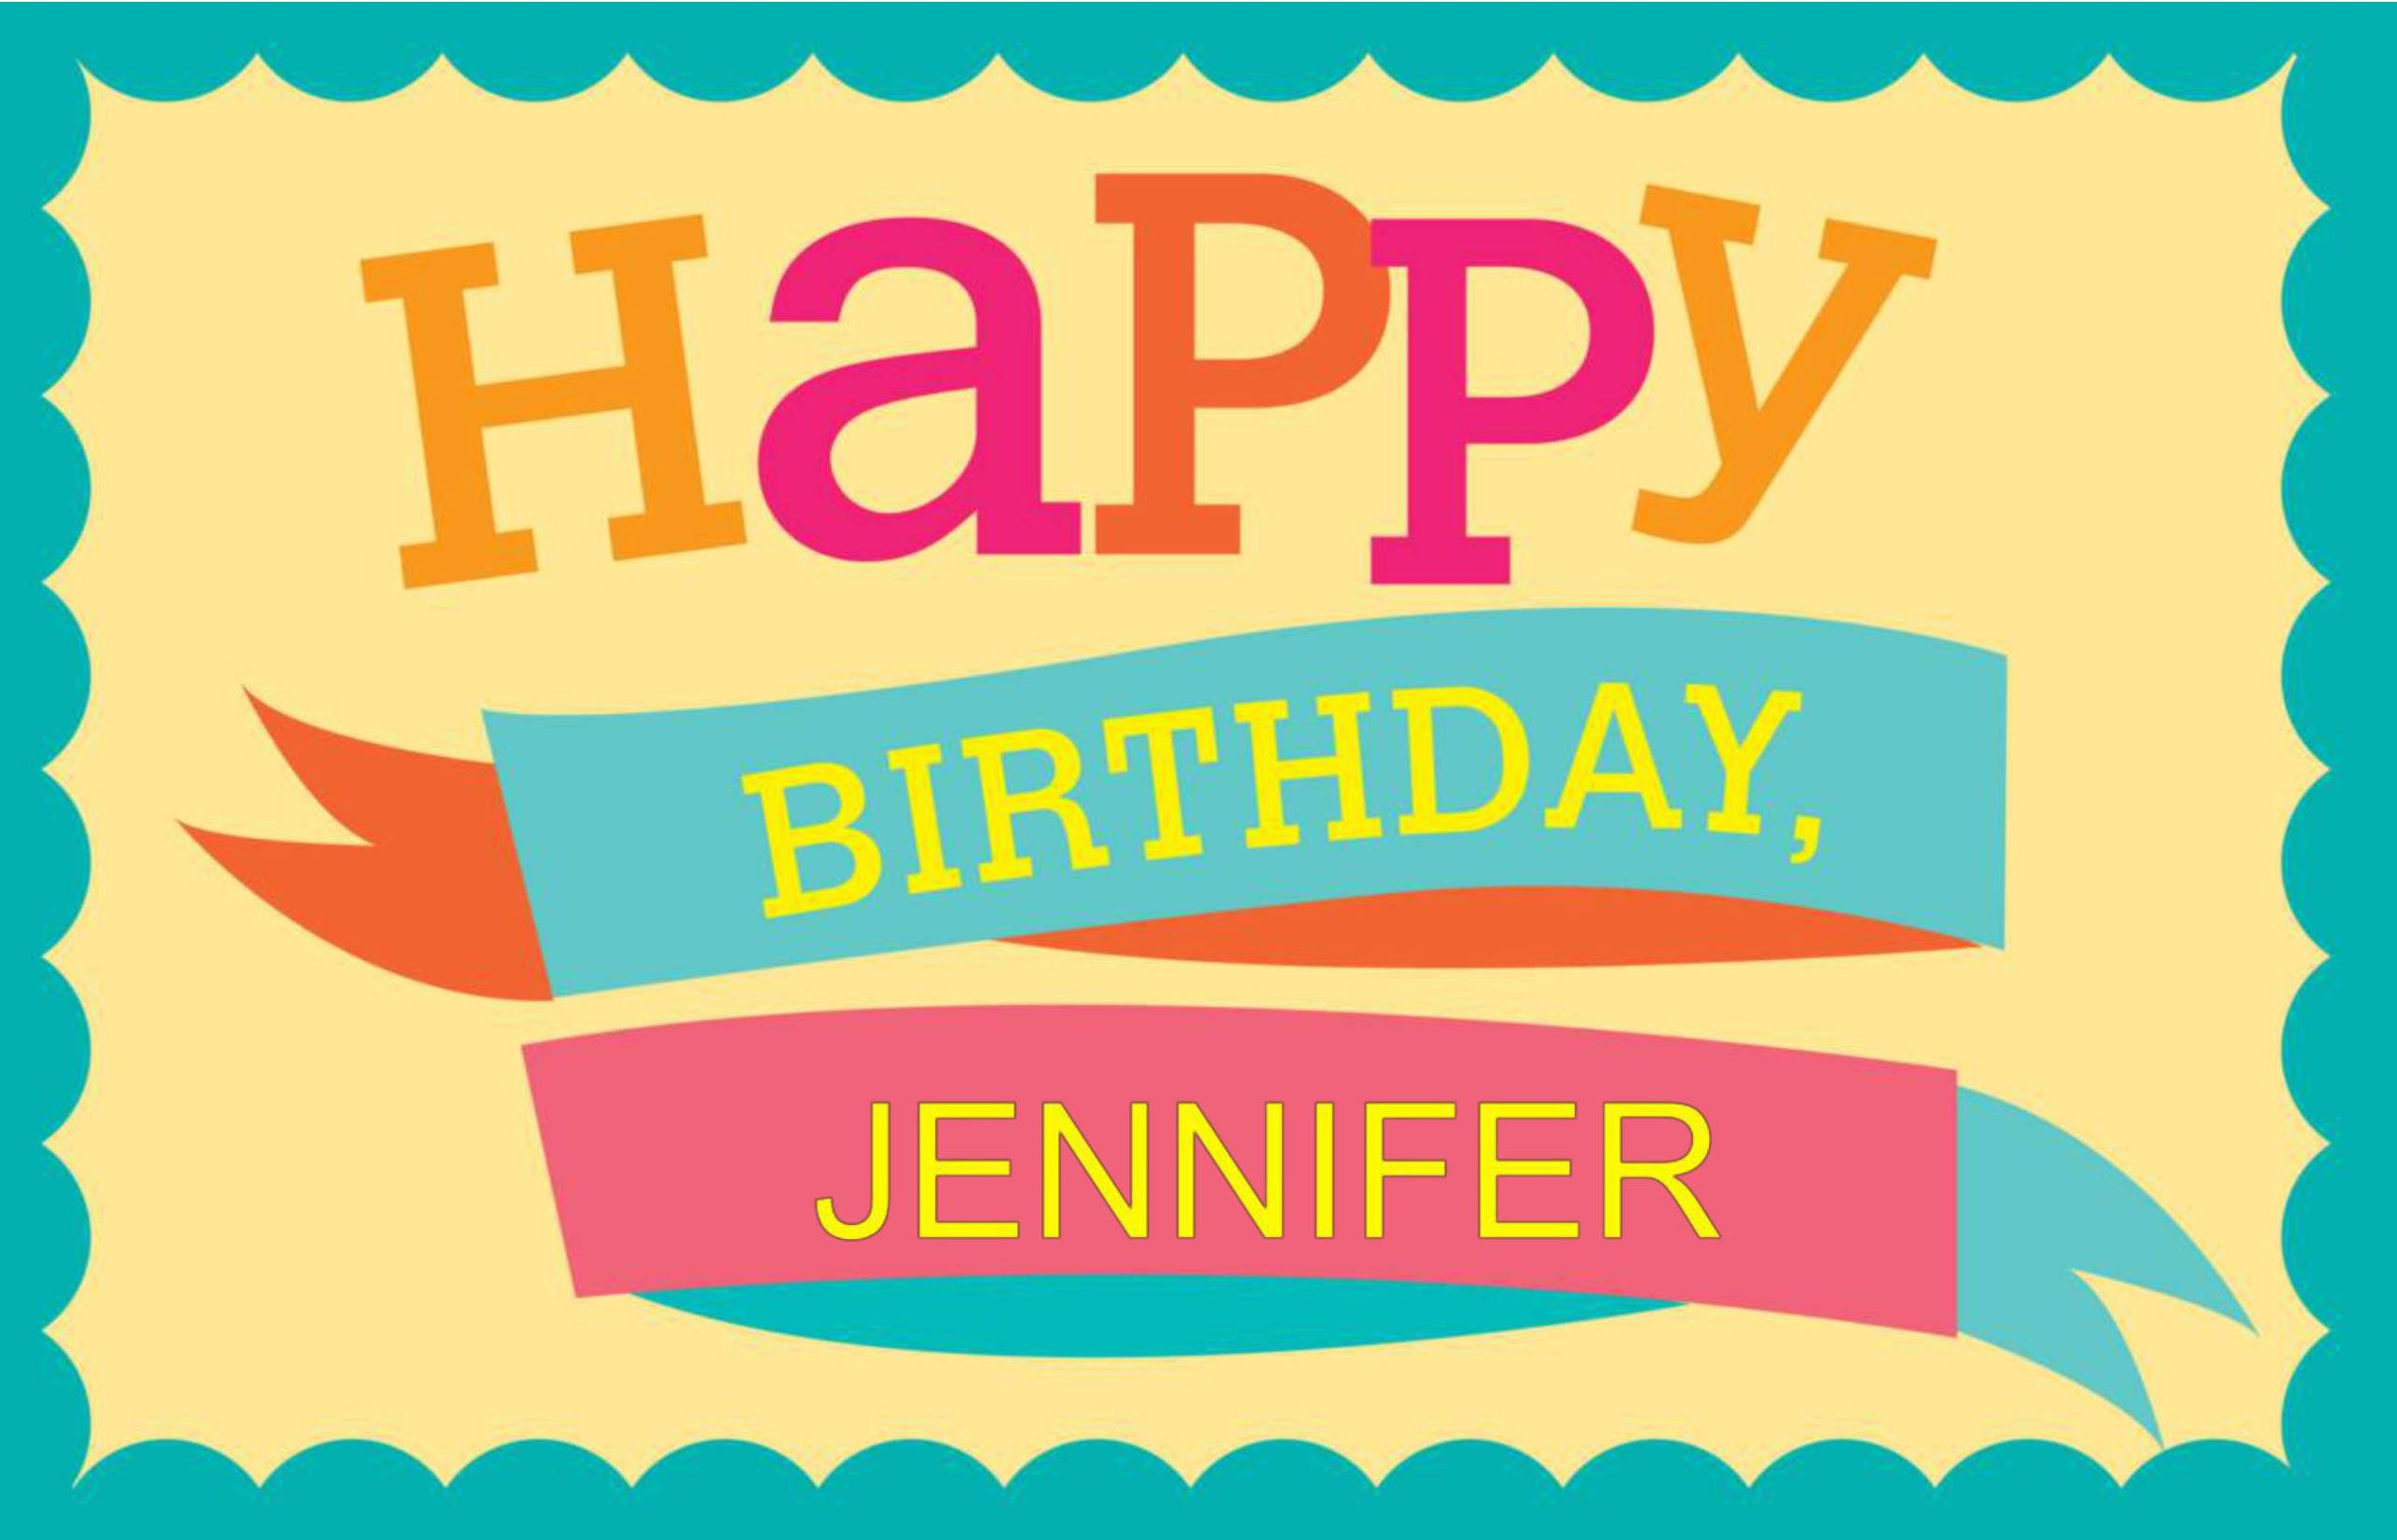 happy birthday jennifer ; 83be8f2d990acd943bf3f4c8eedd795c